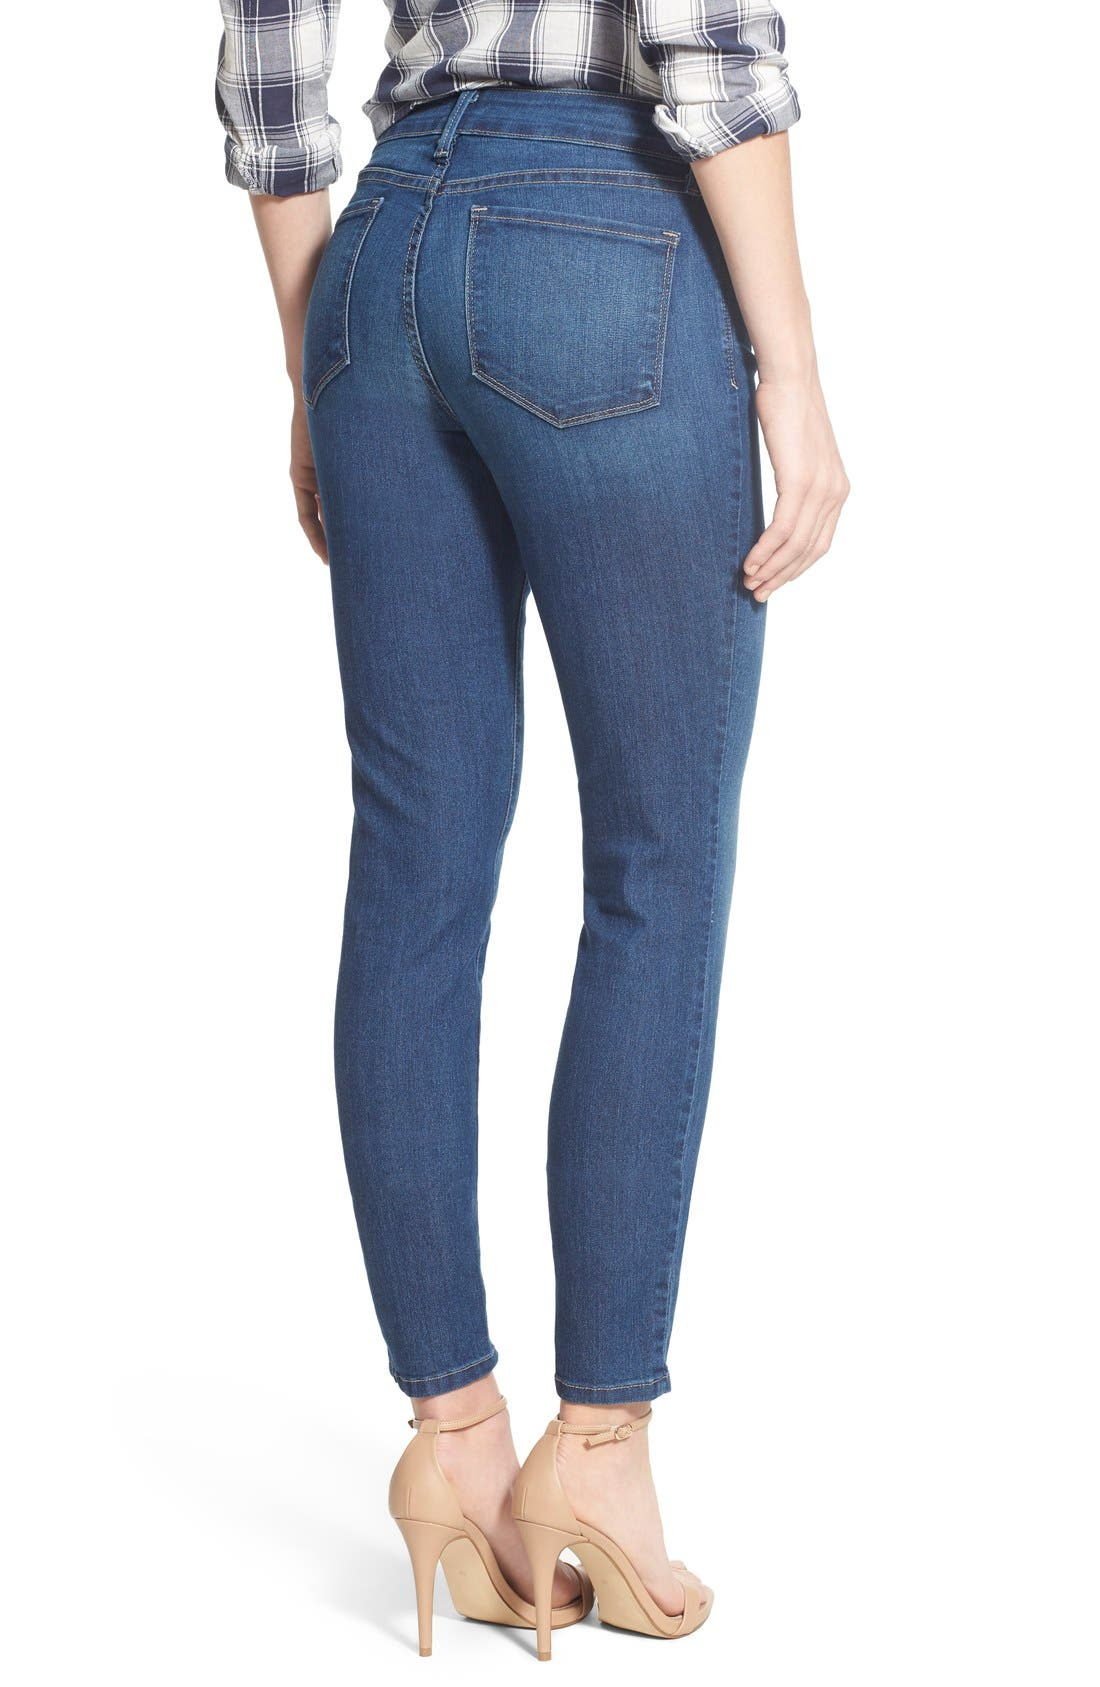 Ami Stretch Skinny Jeans,                             Alternate thumbnail 3, color,                             423